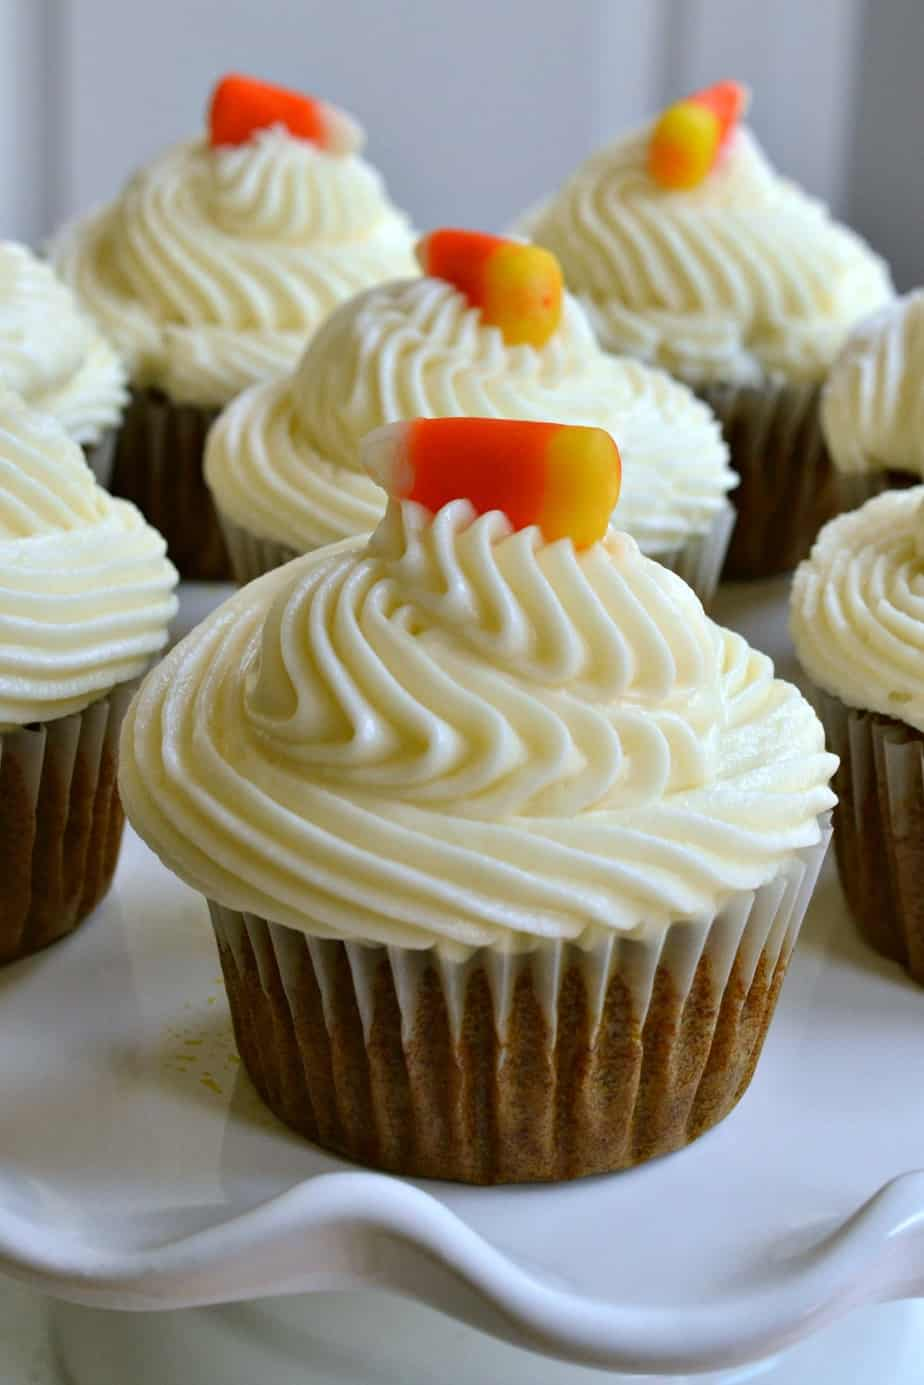 These Pumpkin Cupcakes are the perfect sweet treat, topped with a whipped cream cheese icing and candy corn